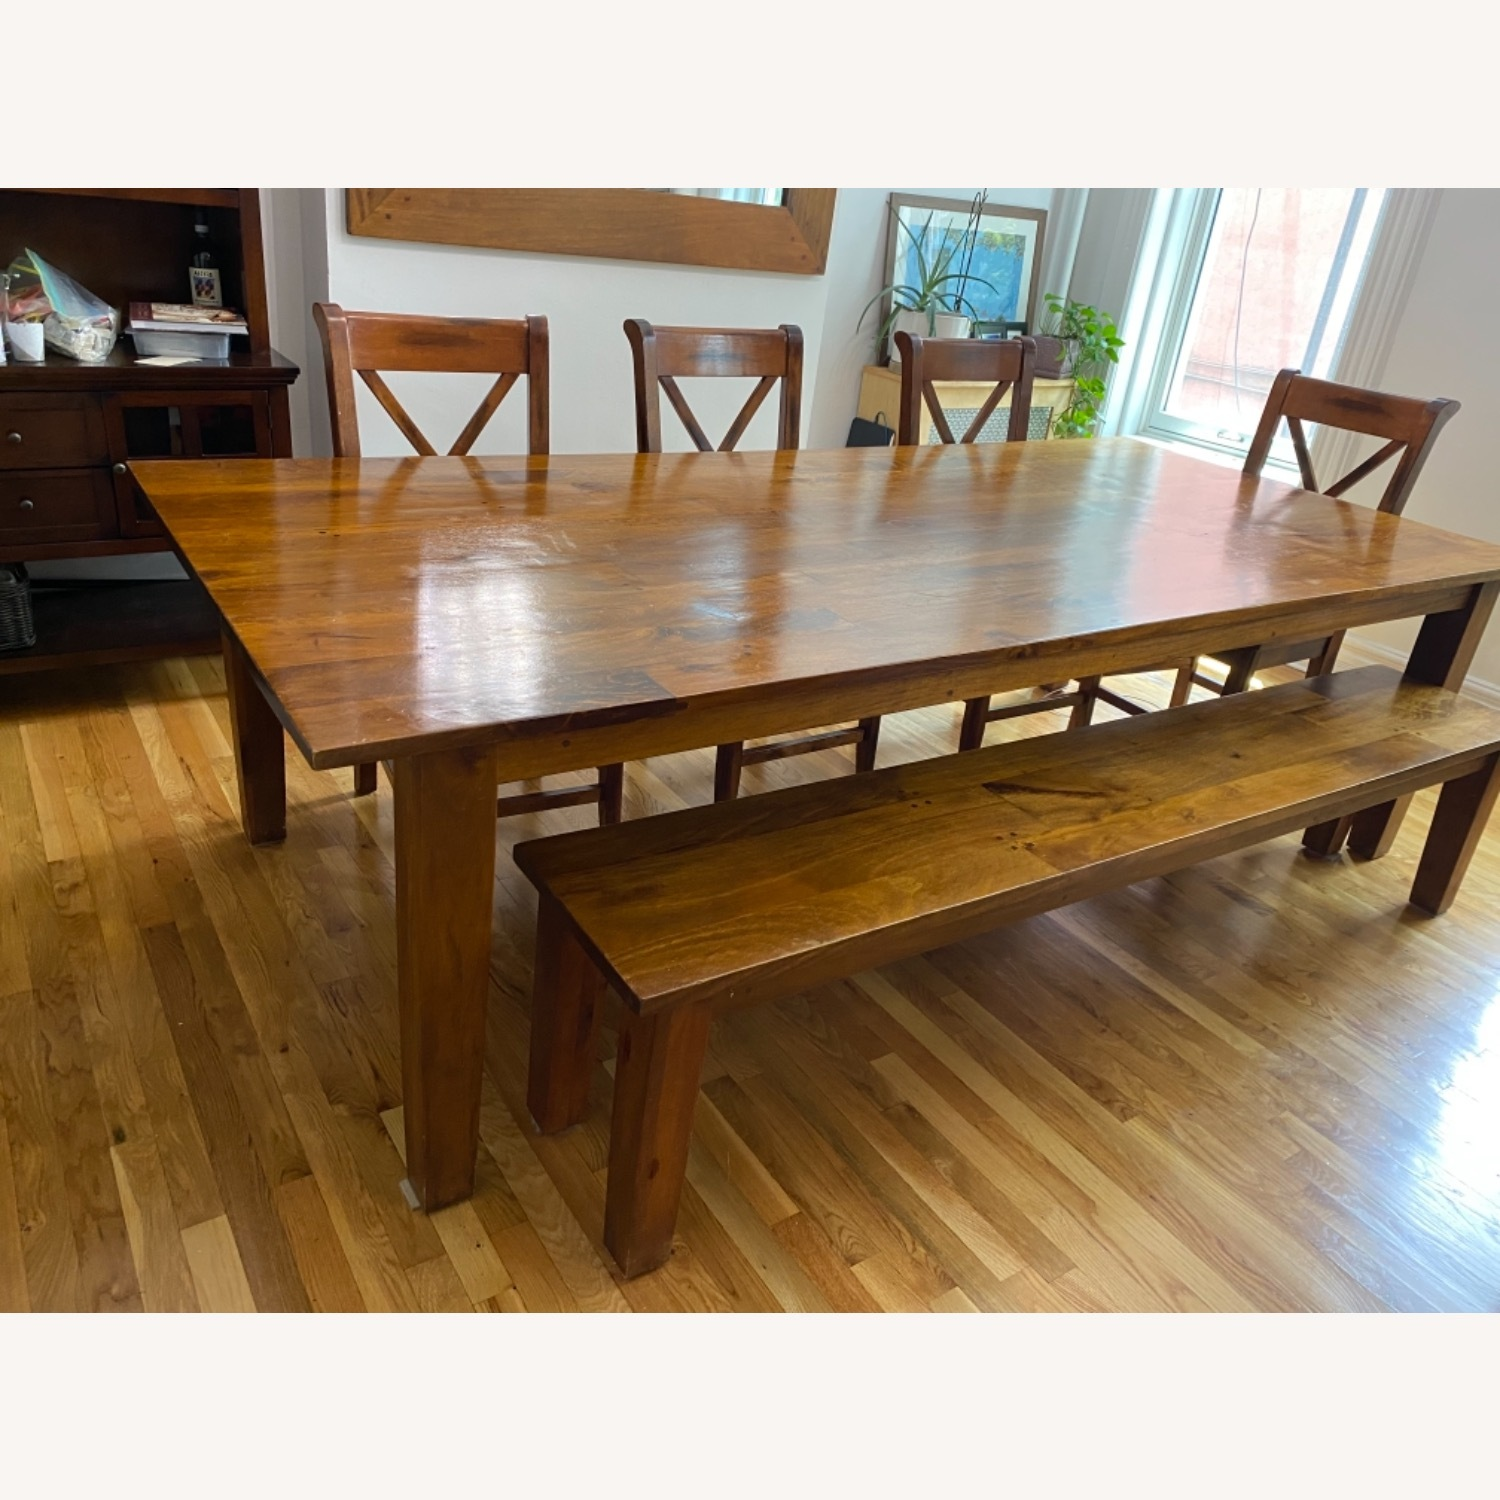 Crate & Barrel Basque Honey Brown Dining Table - image-1